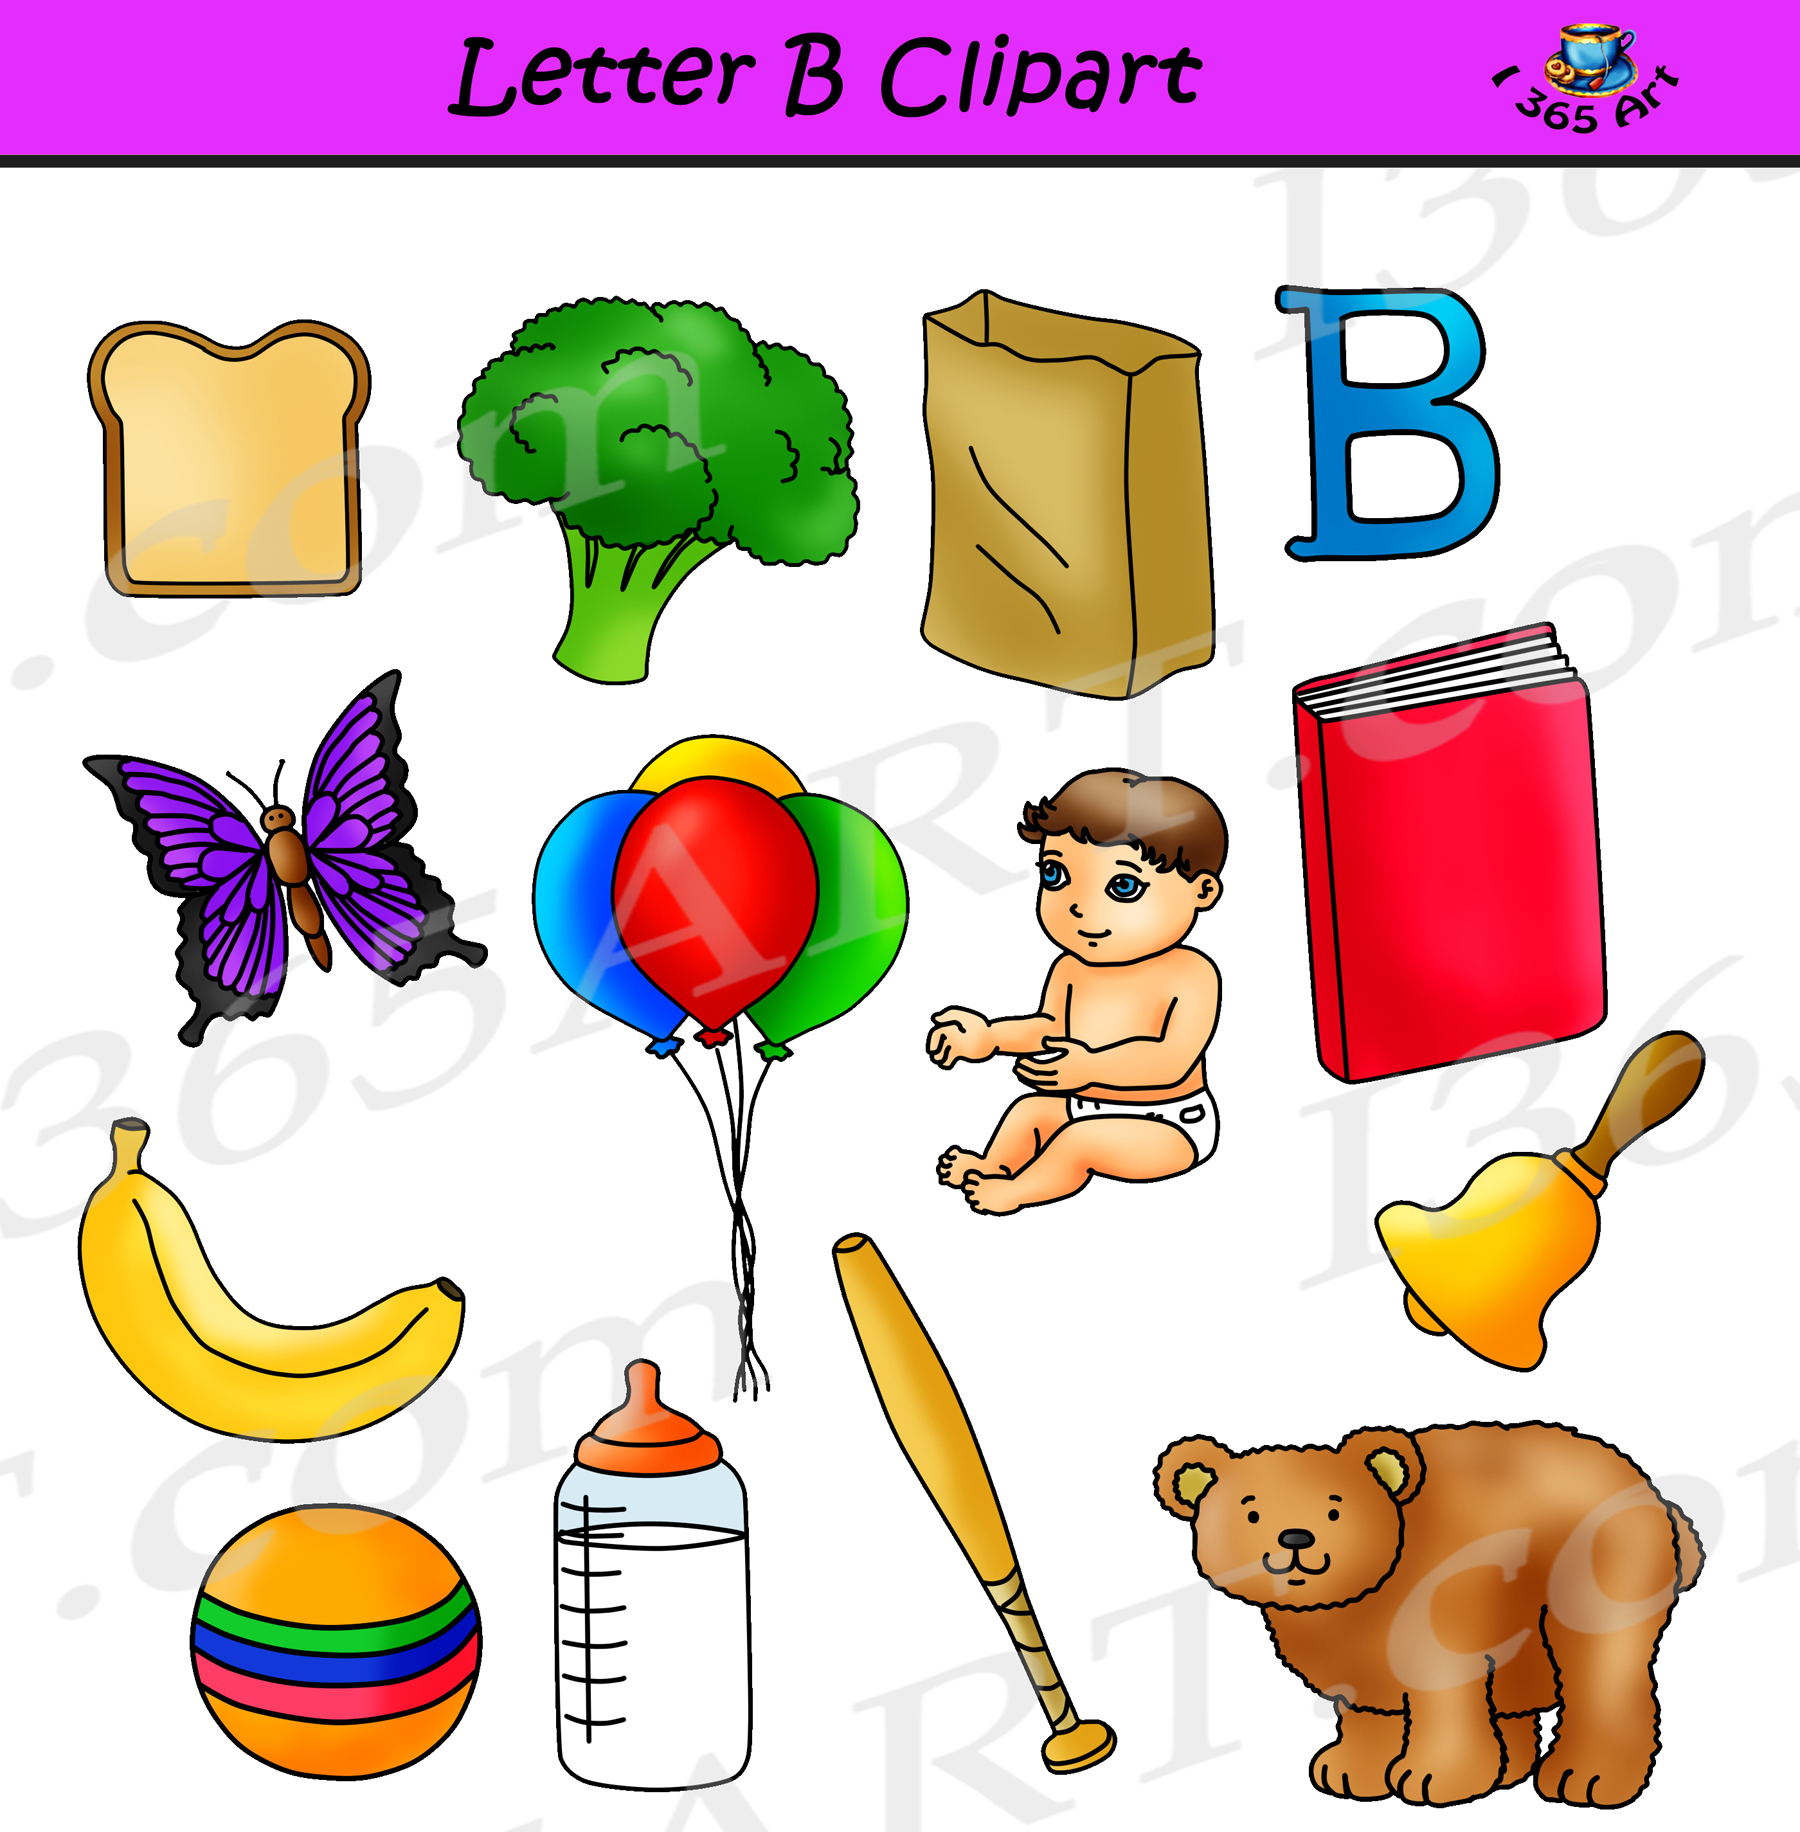 Letter B clipart objects.